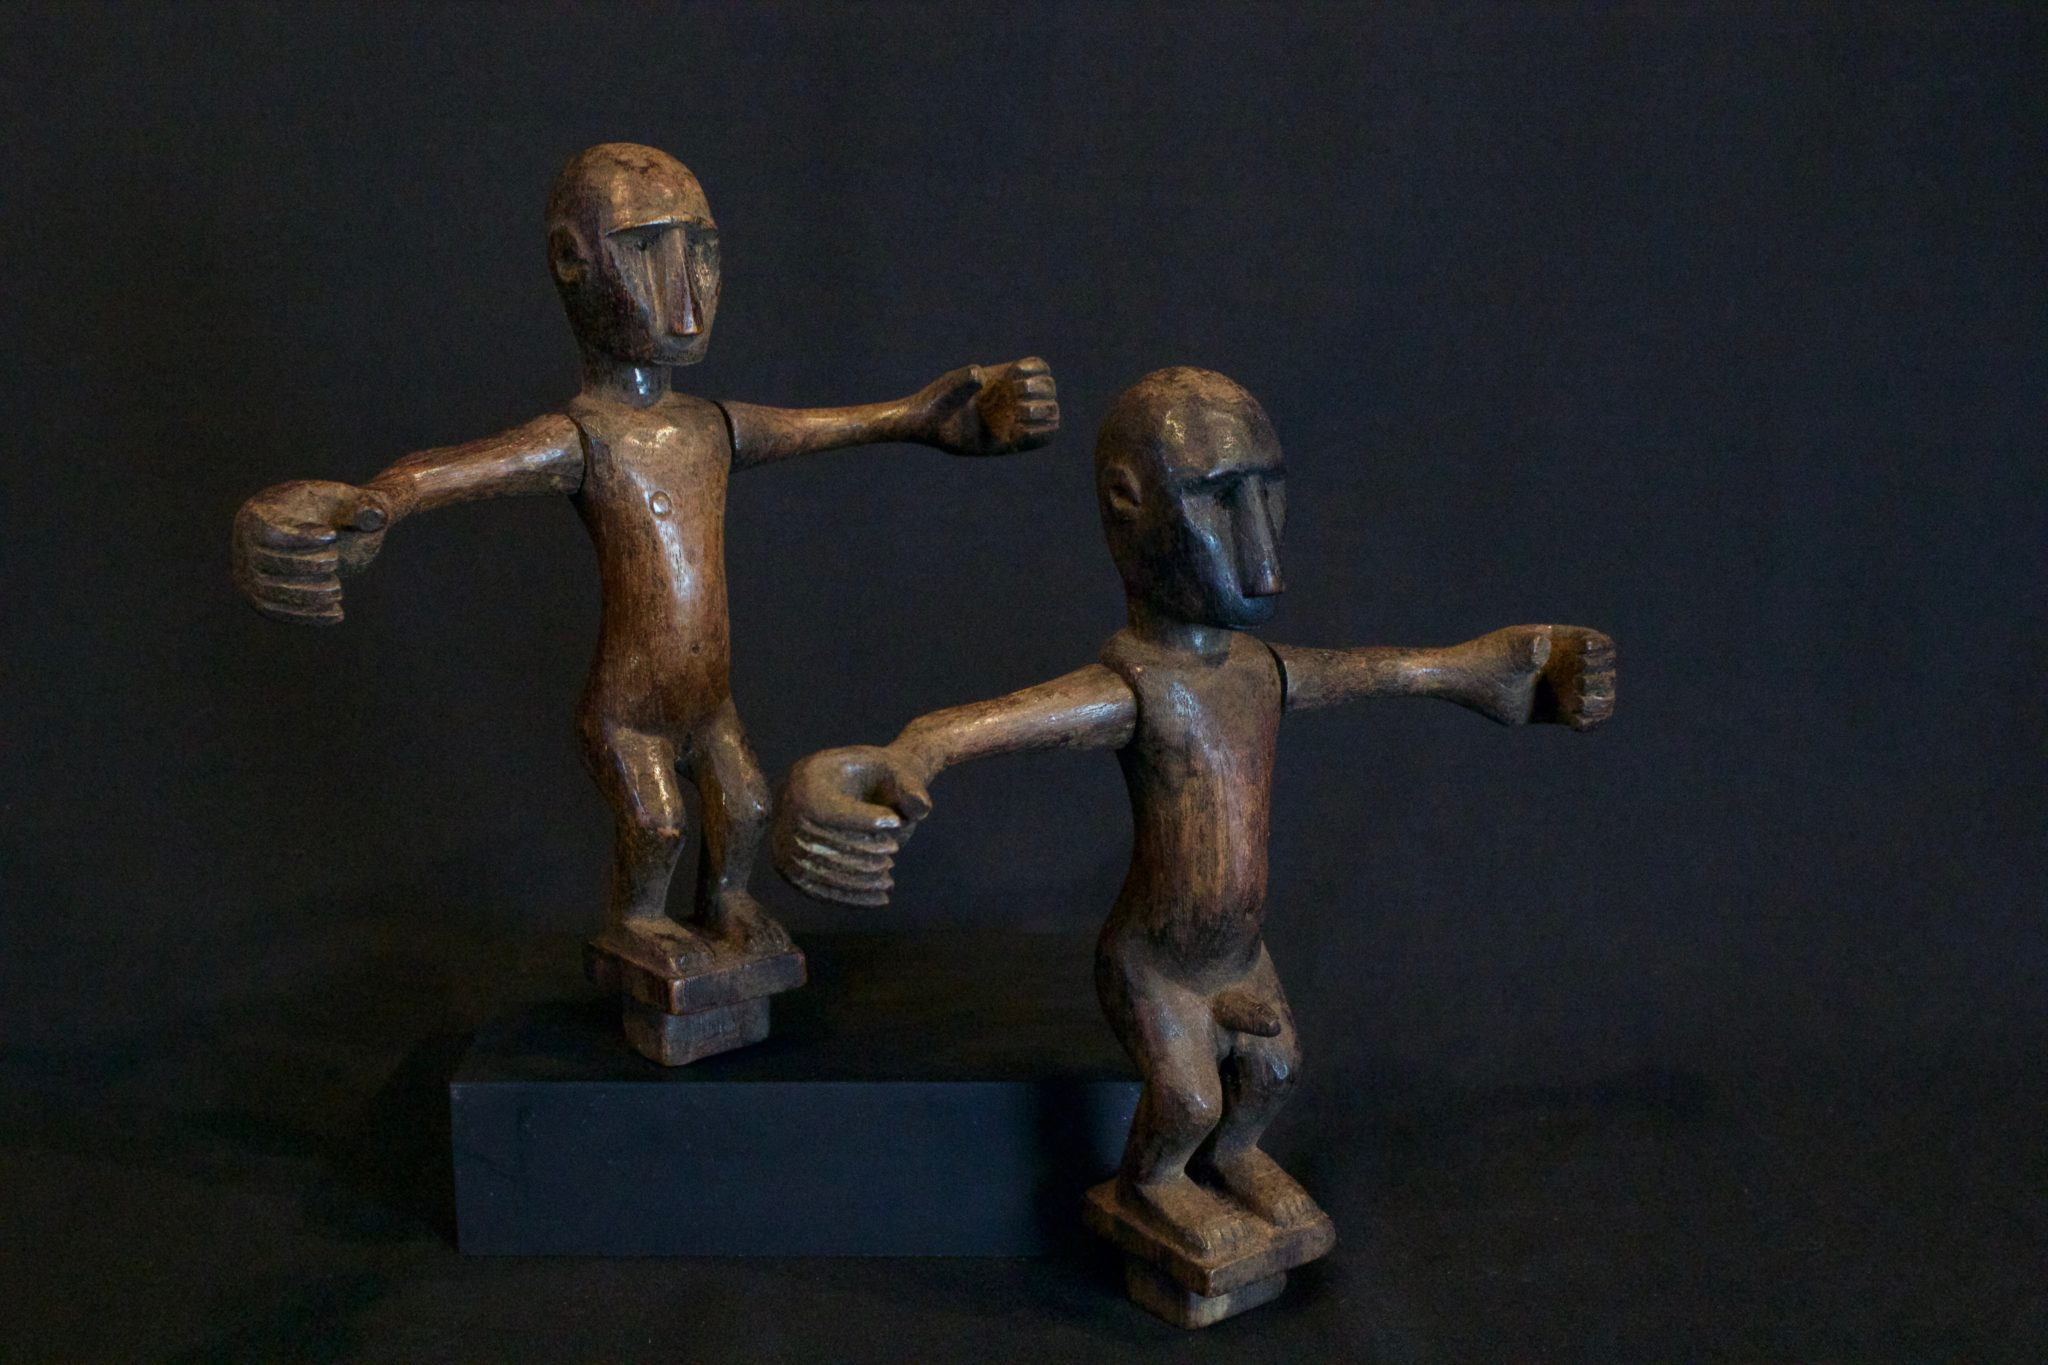 """Shaman Healing Figures, Male and Female Couple, Flores Island, Lesser Sunda Islands, Mid 20th c. Wood, patinated with use and age. One of the pair held in each hand during a ceremonial dance for healing a marriage. (female - 8"""" x 7 ¾"""" x 1""""); (male - 8"""" x 8"""" x 1 ½""""), $590 (sold as pair)"""